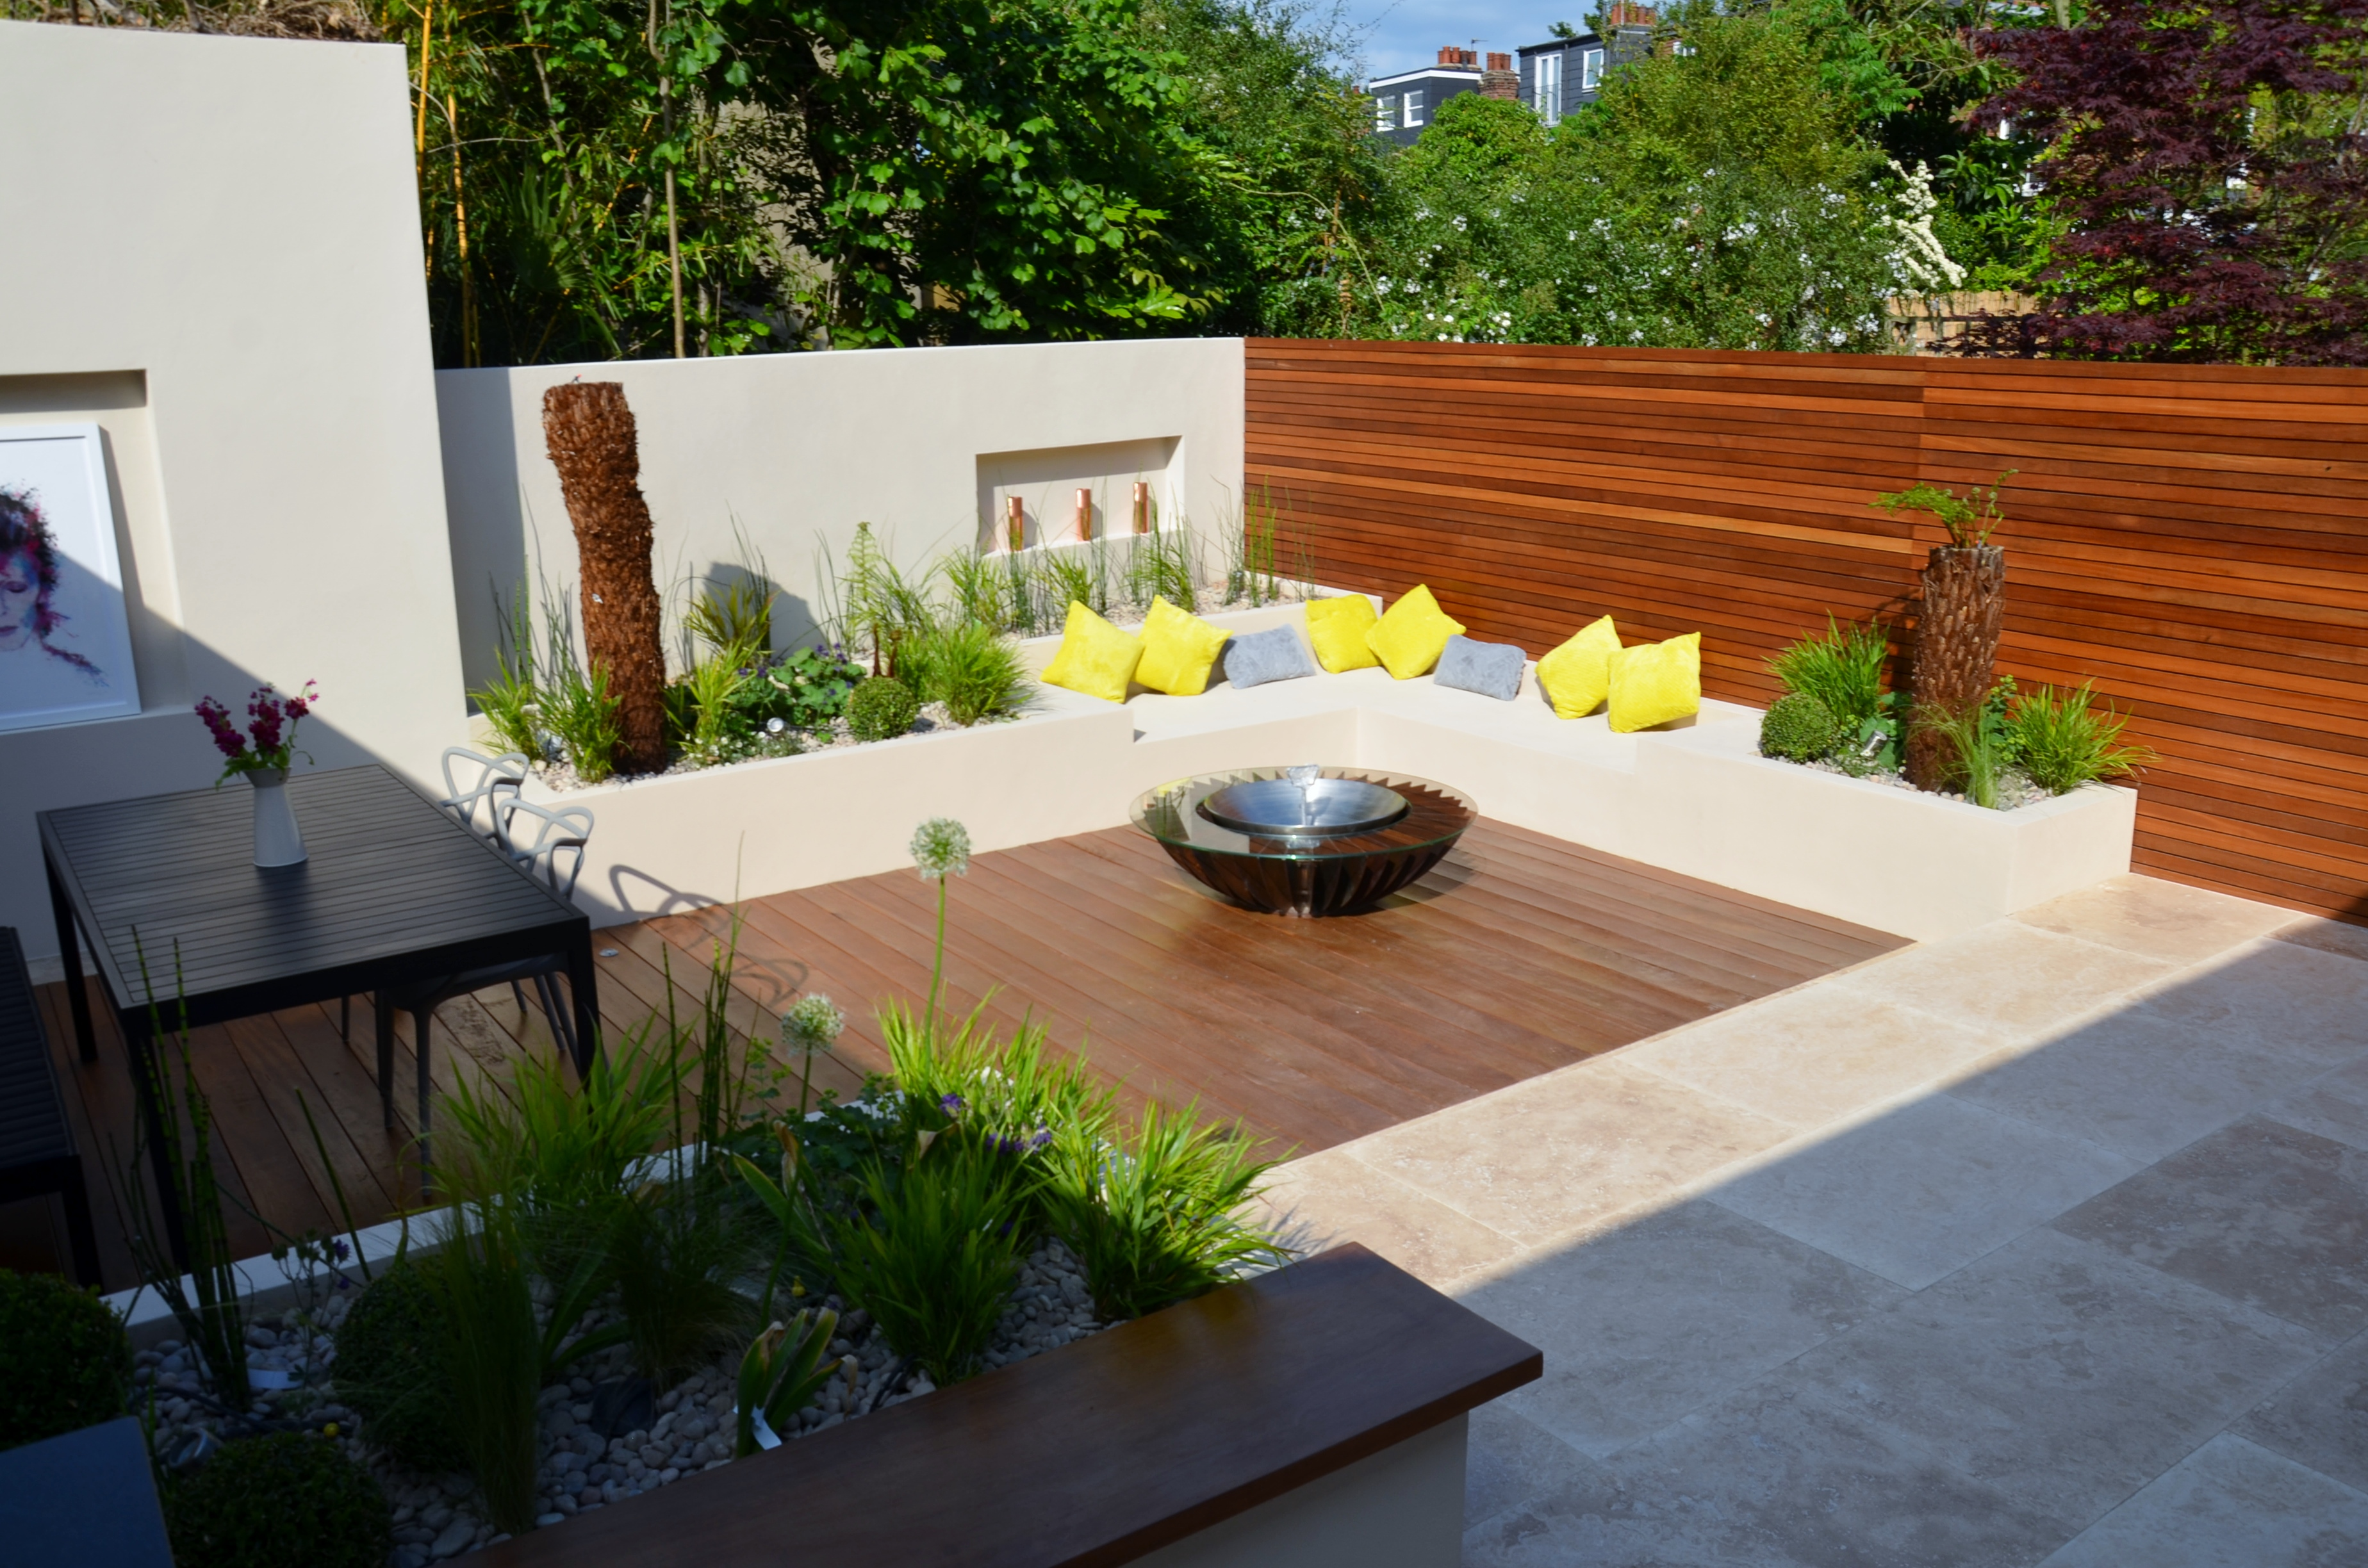 modern garden design outdoor room with kitchen seating  camden kensington oval lambeth